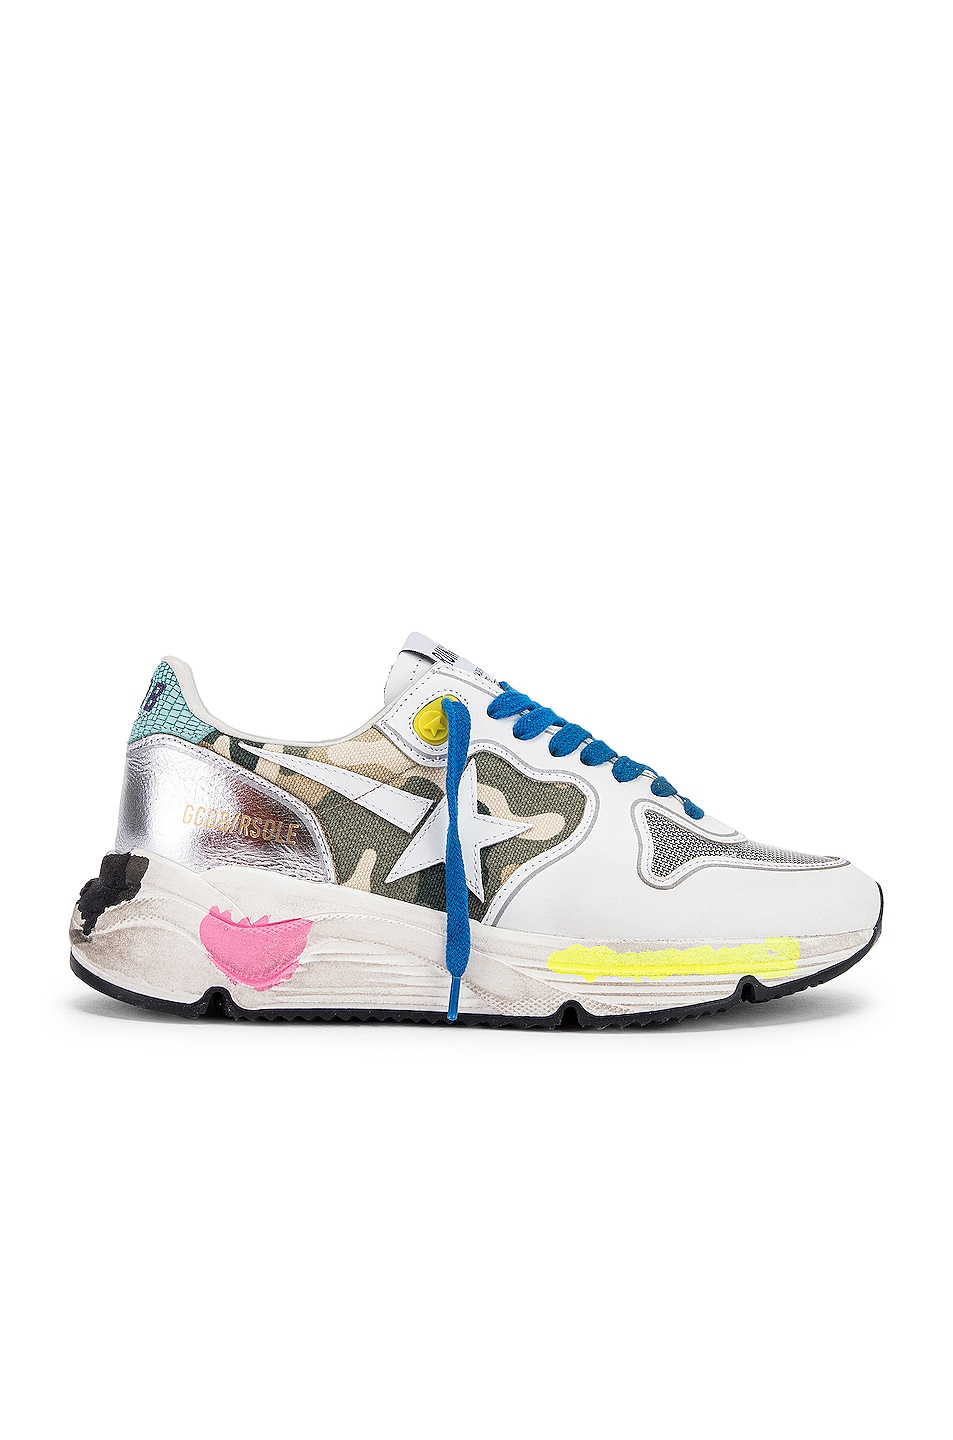 Image 1 of Golden Goose Running Sole Sneaker in White & Camouflage